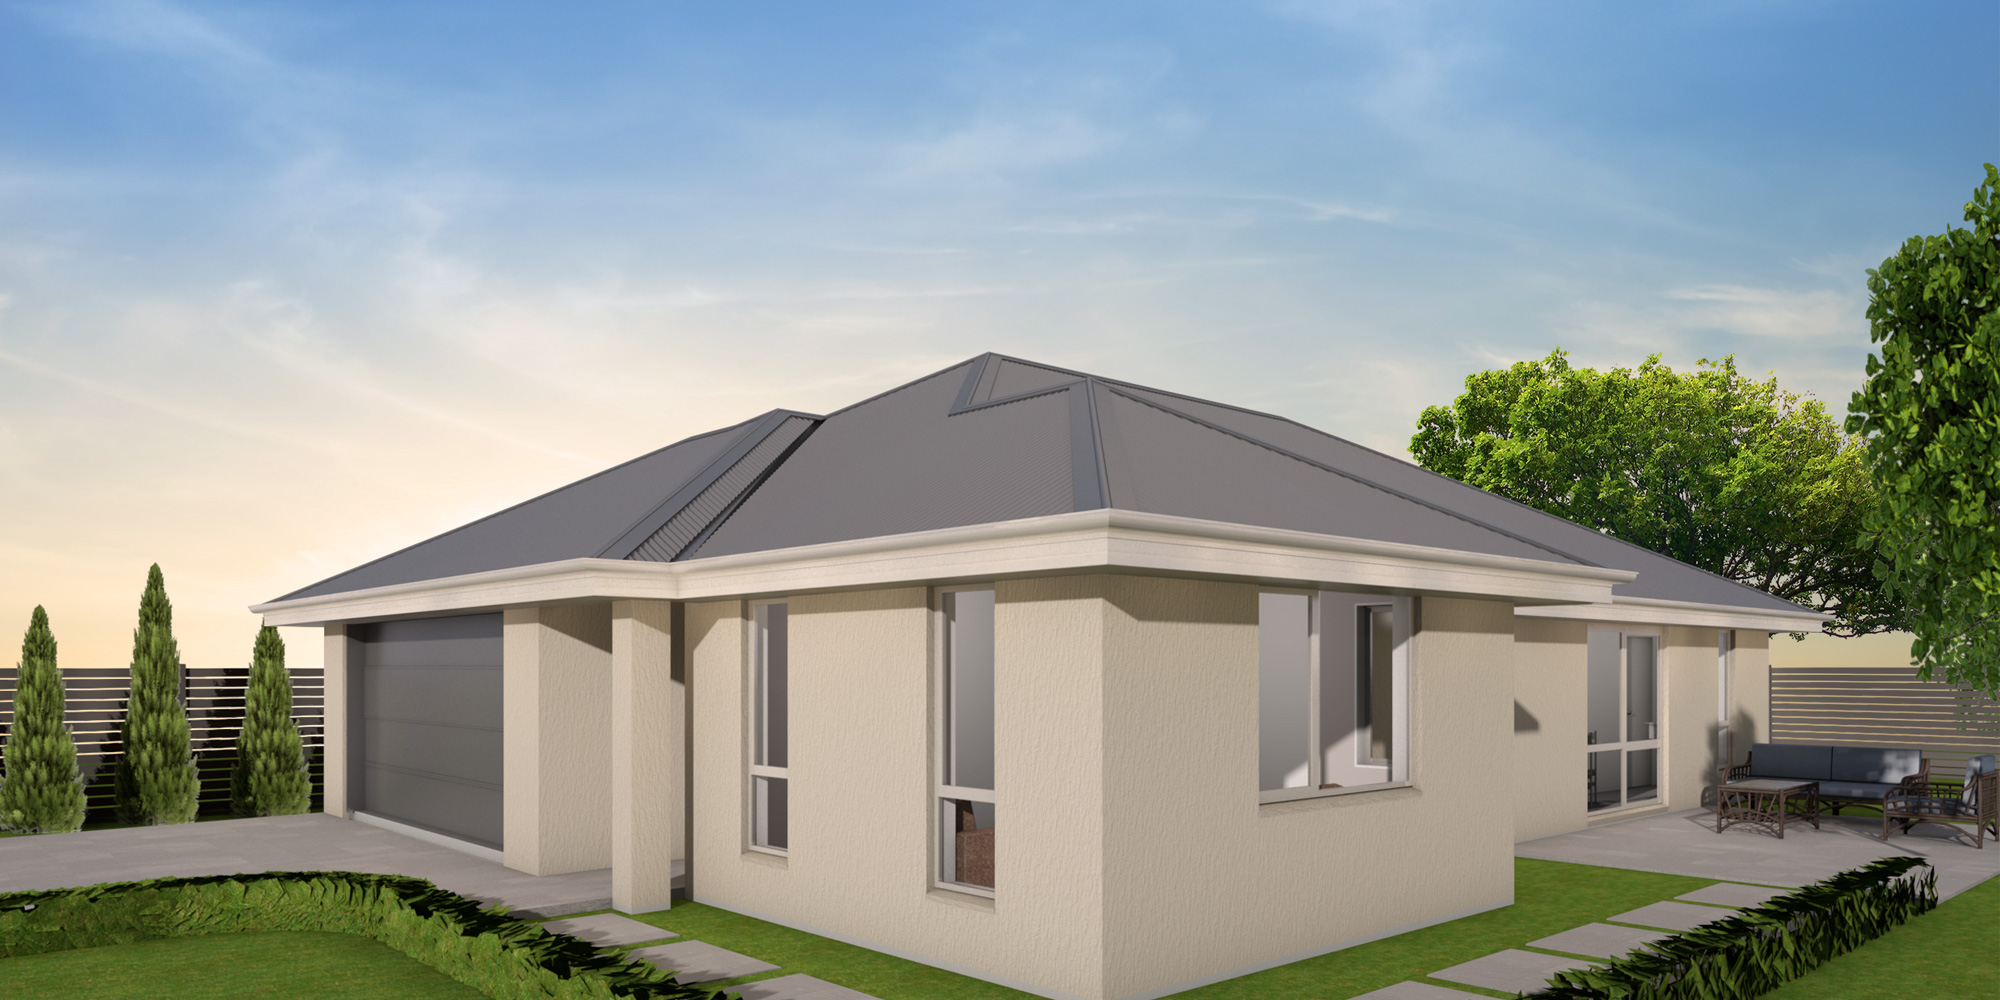 - This home's 170m² floor plan allows you to make the most of your site. With a walk-in pantry, open plan living plus a separate lounge and an ensuite and walk-in wardrobe in the master bedroom what more could you possibly want?